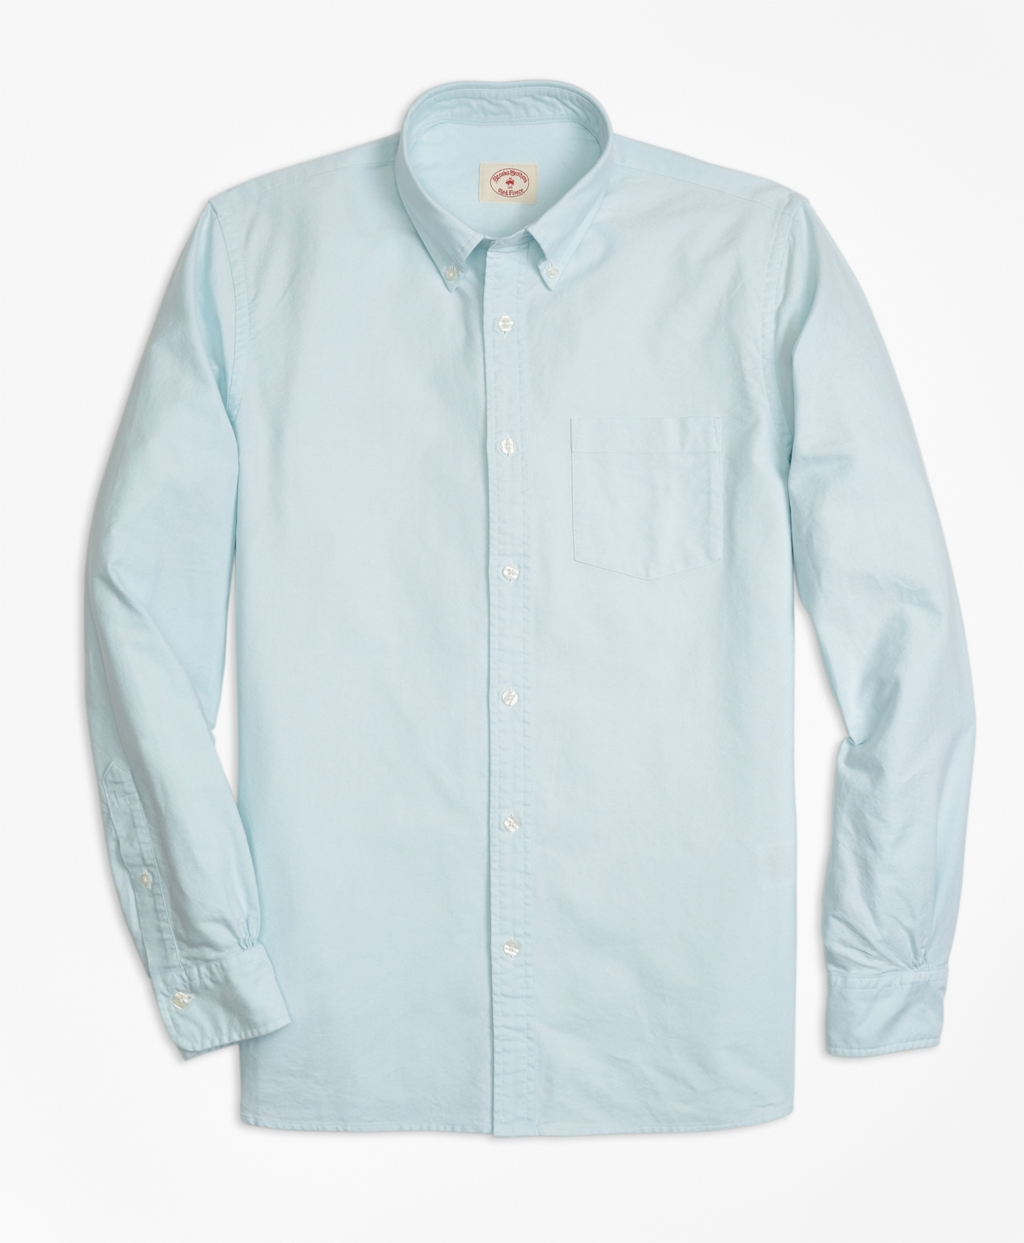 Mens Solid Oxford Sport Shirt Brooks Brothers